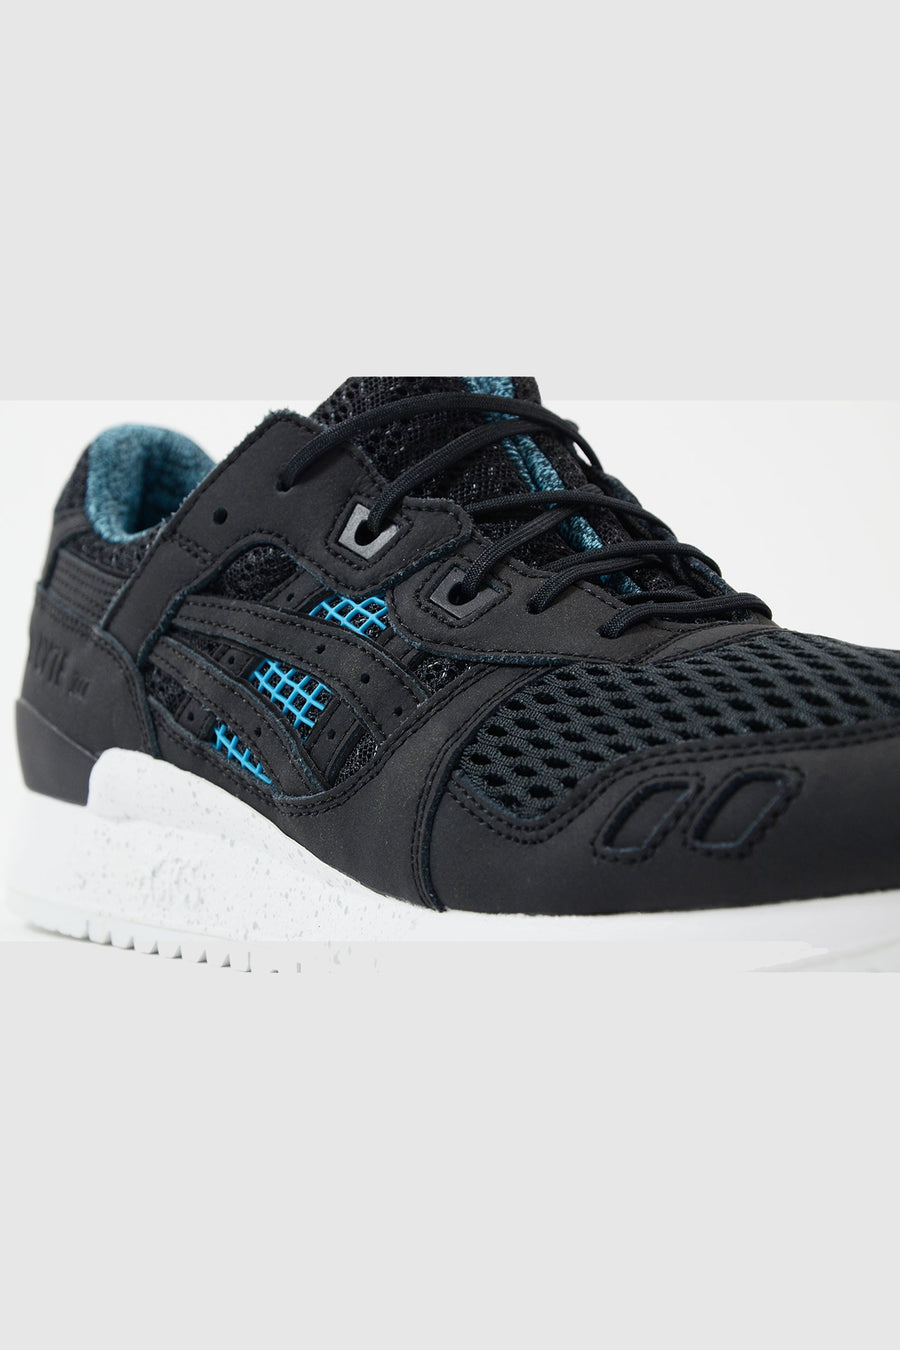 "Asics - Gel Lyte III ""30th Anniversary"" (Black/ Black)"